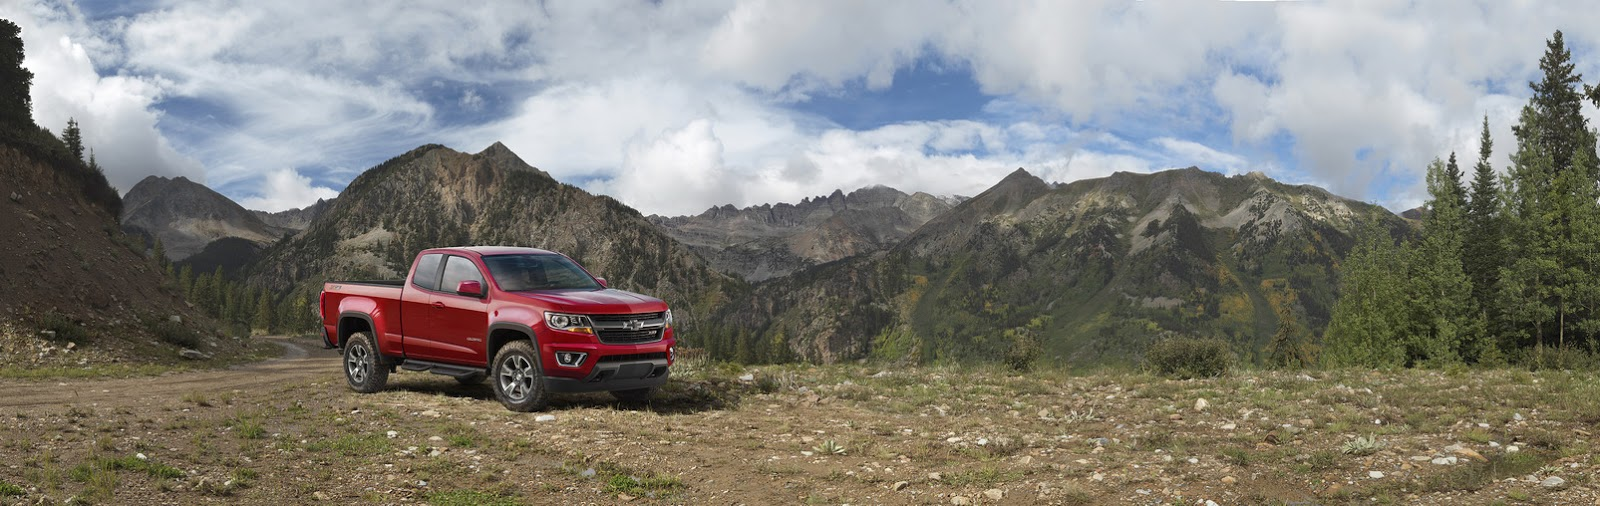 Chevy Styles Up 2015 Colorado With New Z71 Trail Boss